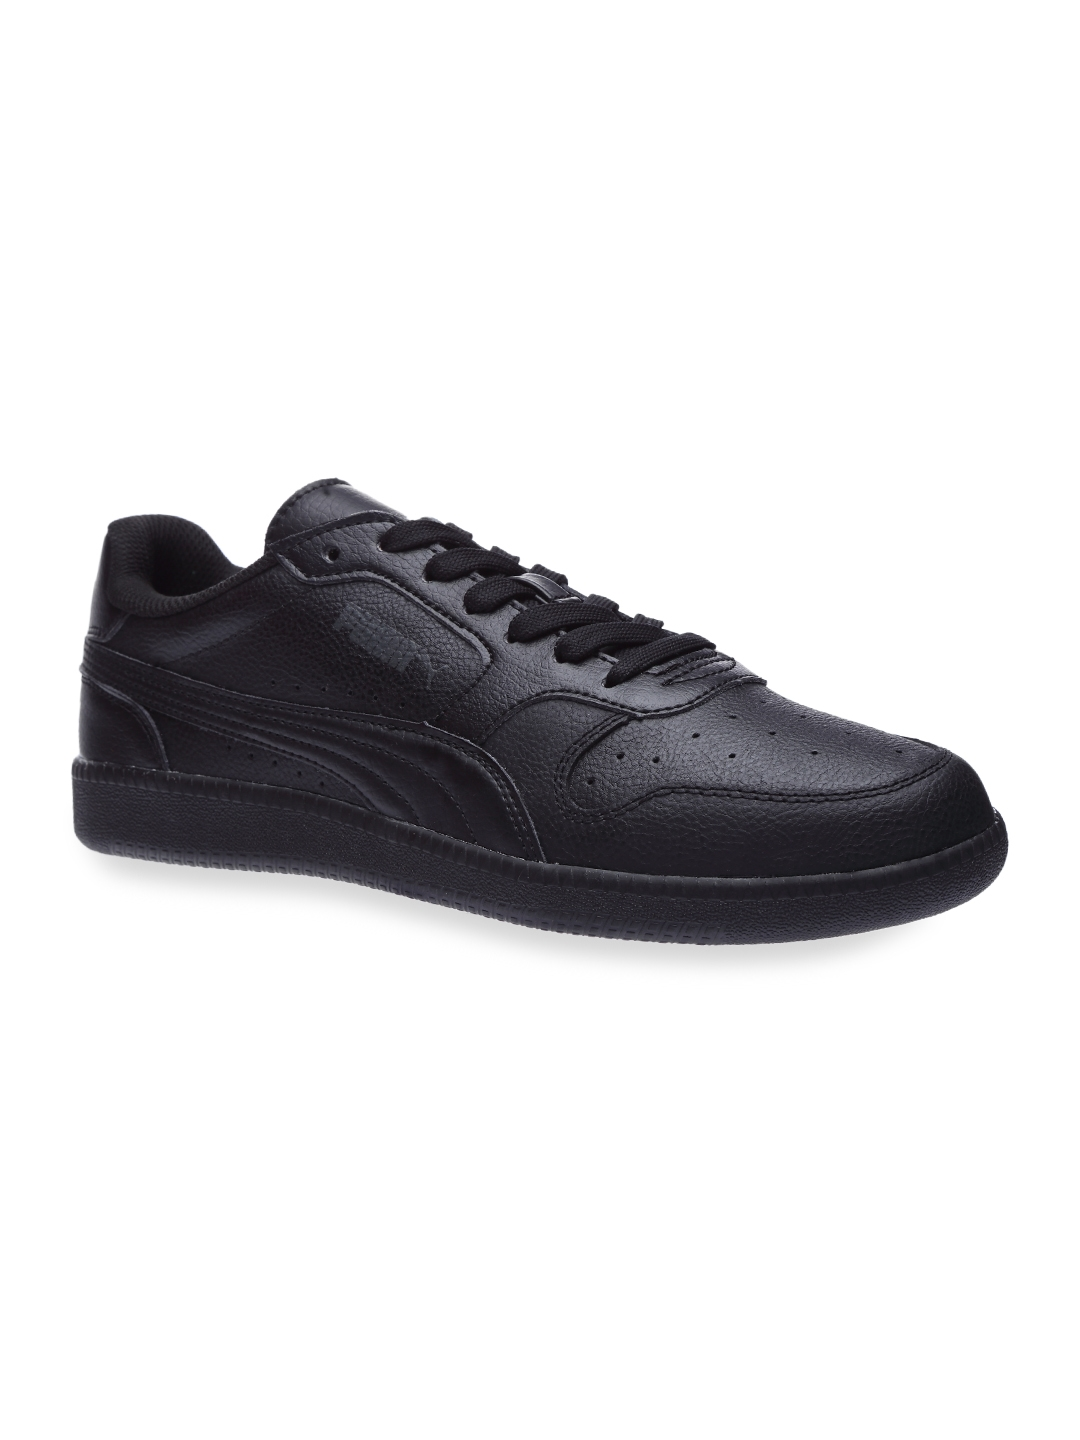 Shoes Buy Sneakers Trainer For Casual Icra Men Black Puma L rqgx1Ar8w